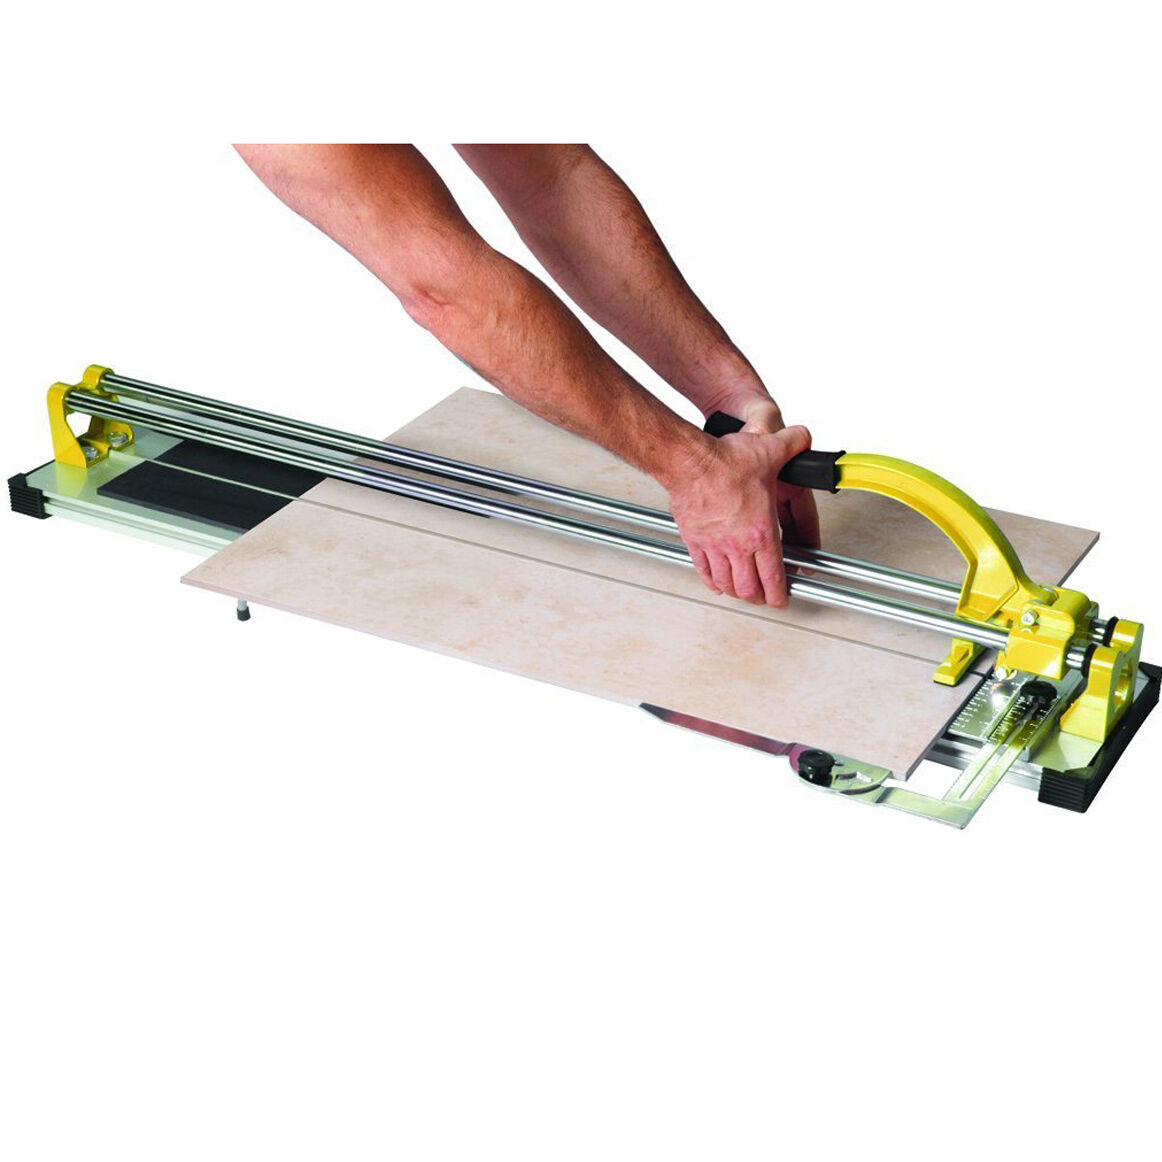 Manual Tile Cutter for Porcelain and Ceramic Cutting Wheel Flooring Tool 35in